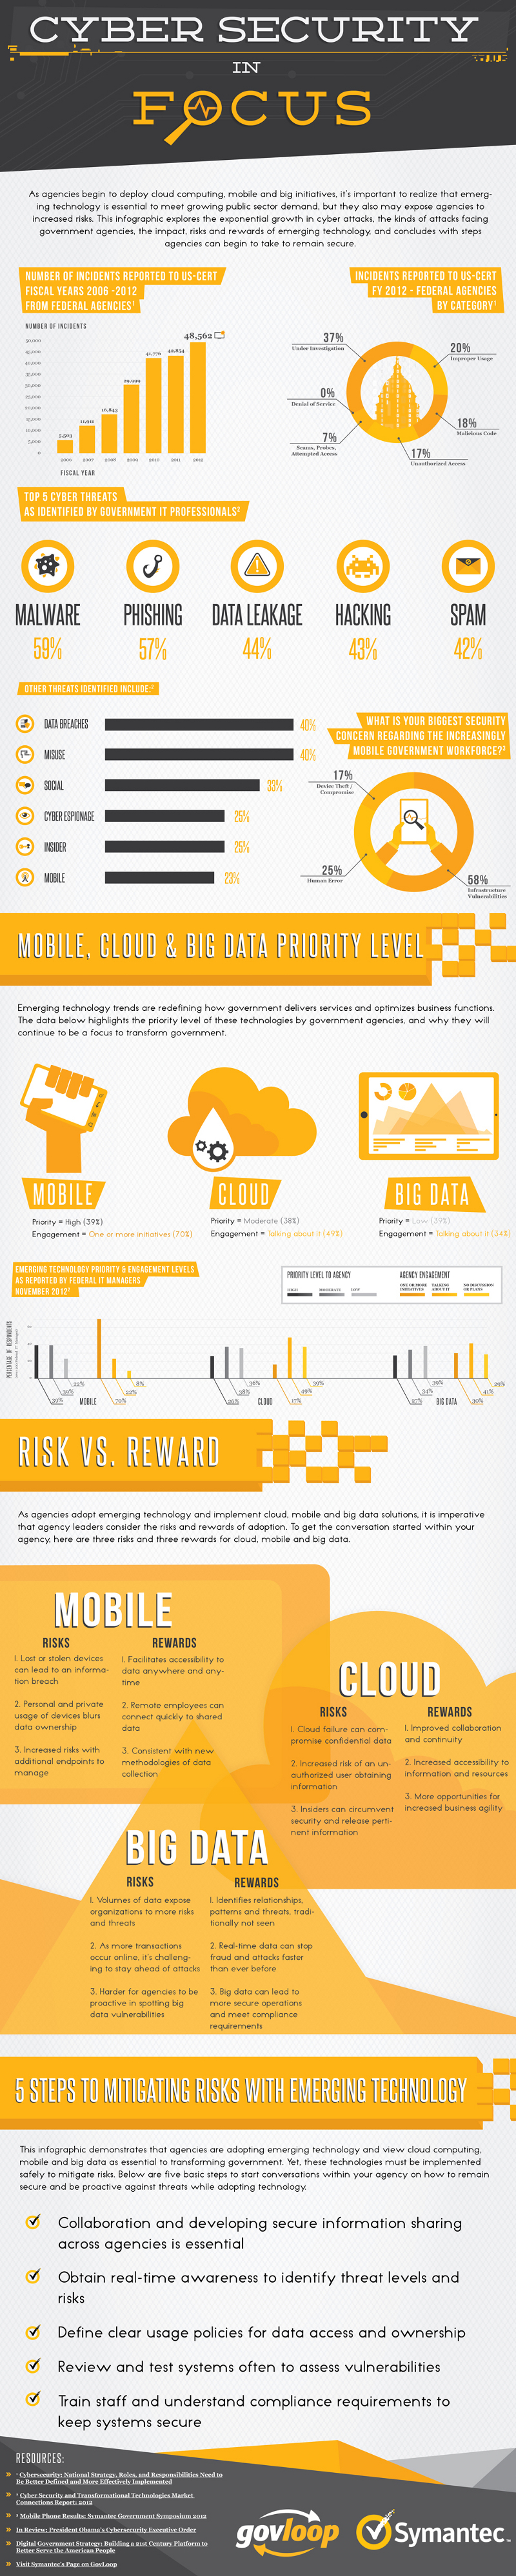 Cyber Security Facts and Trends